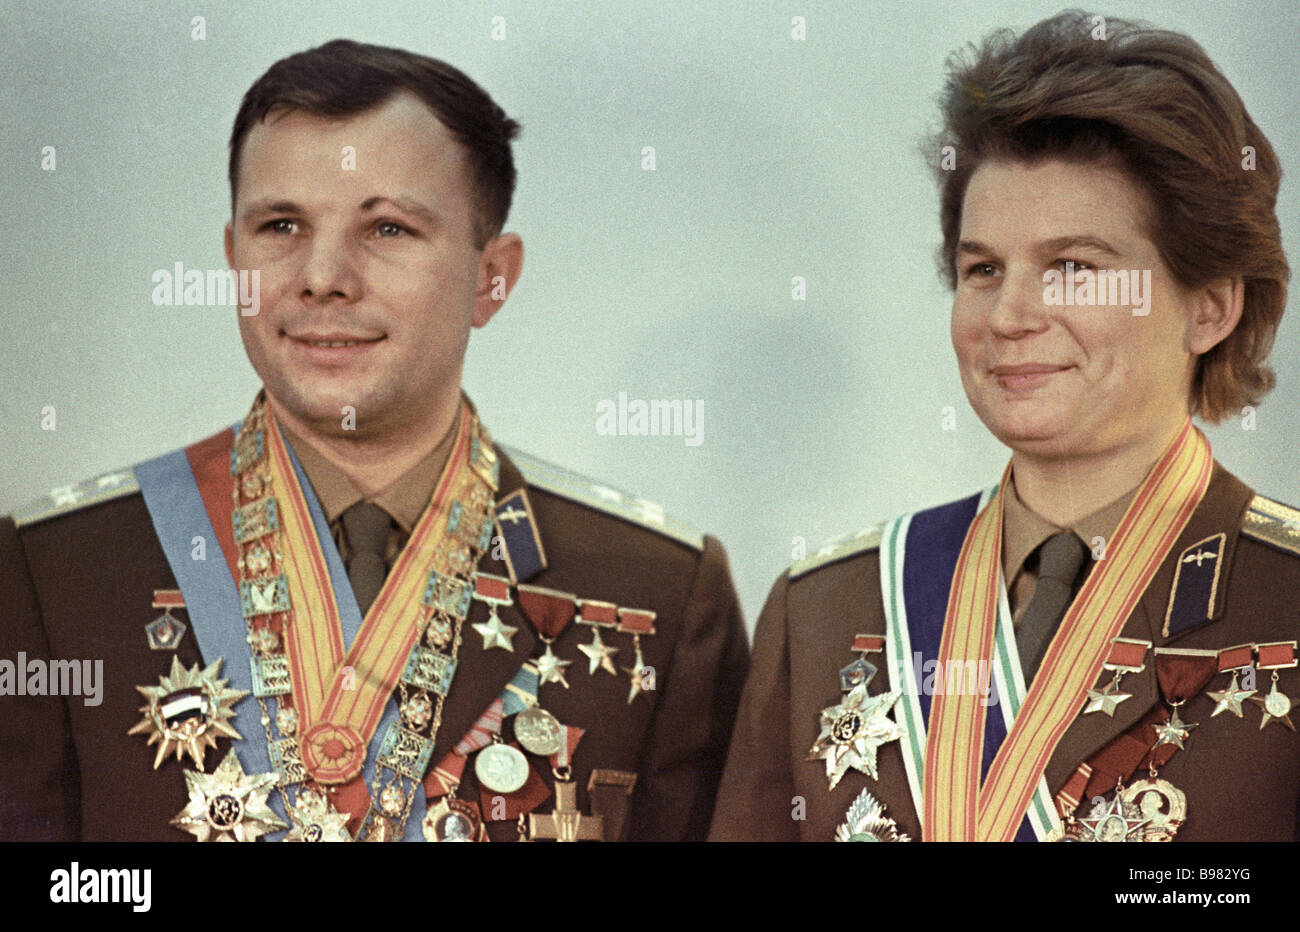 How many Heroes of the Soviet Union 67